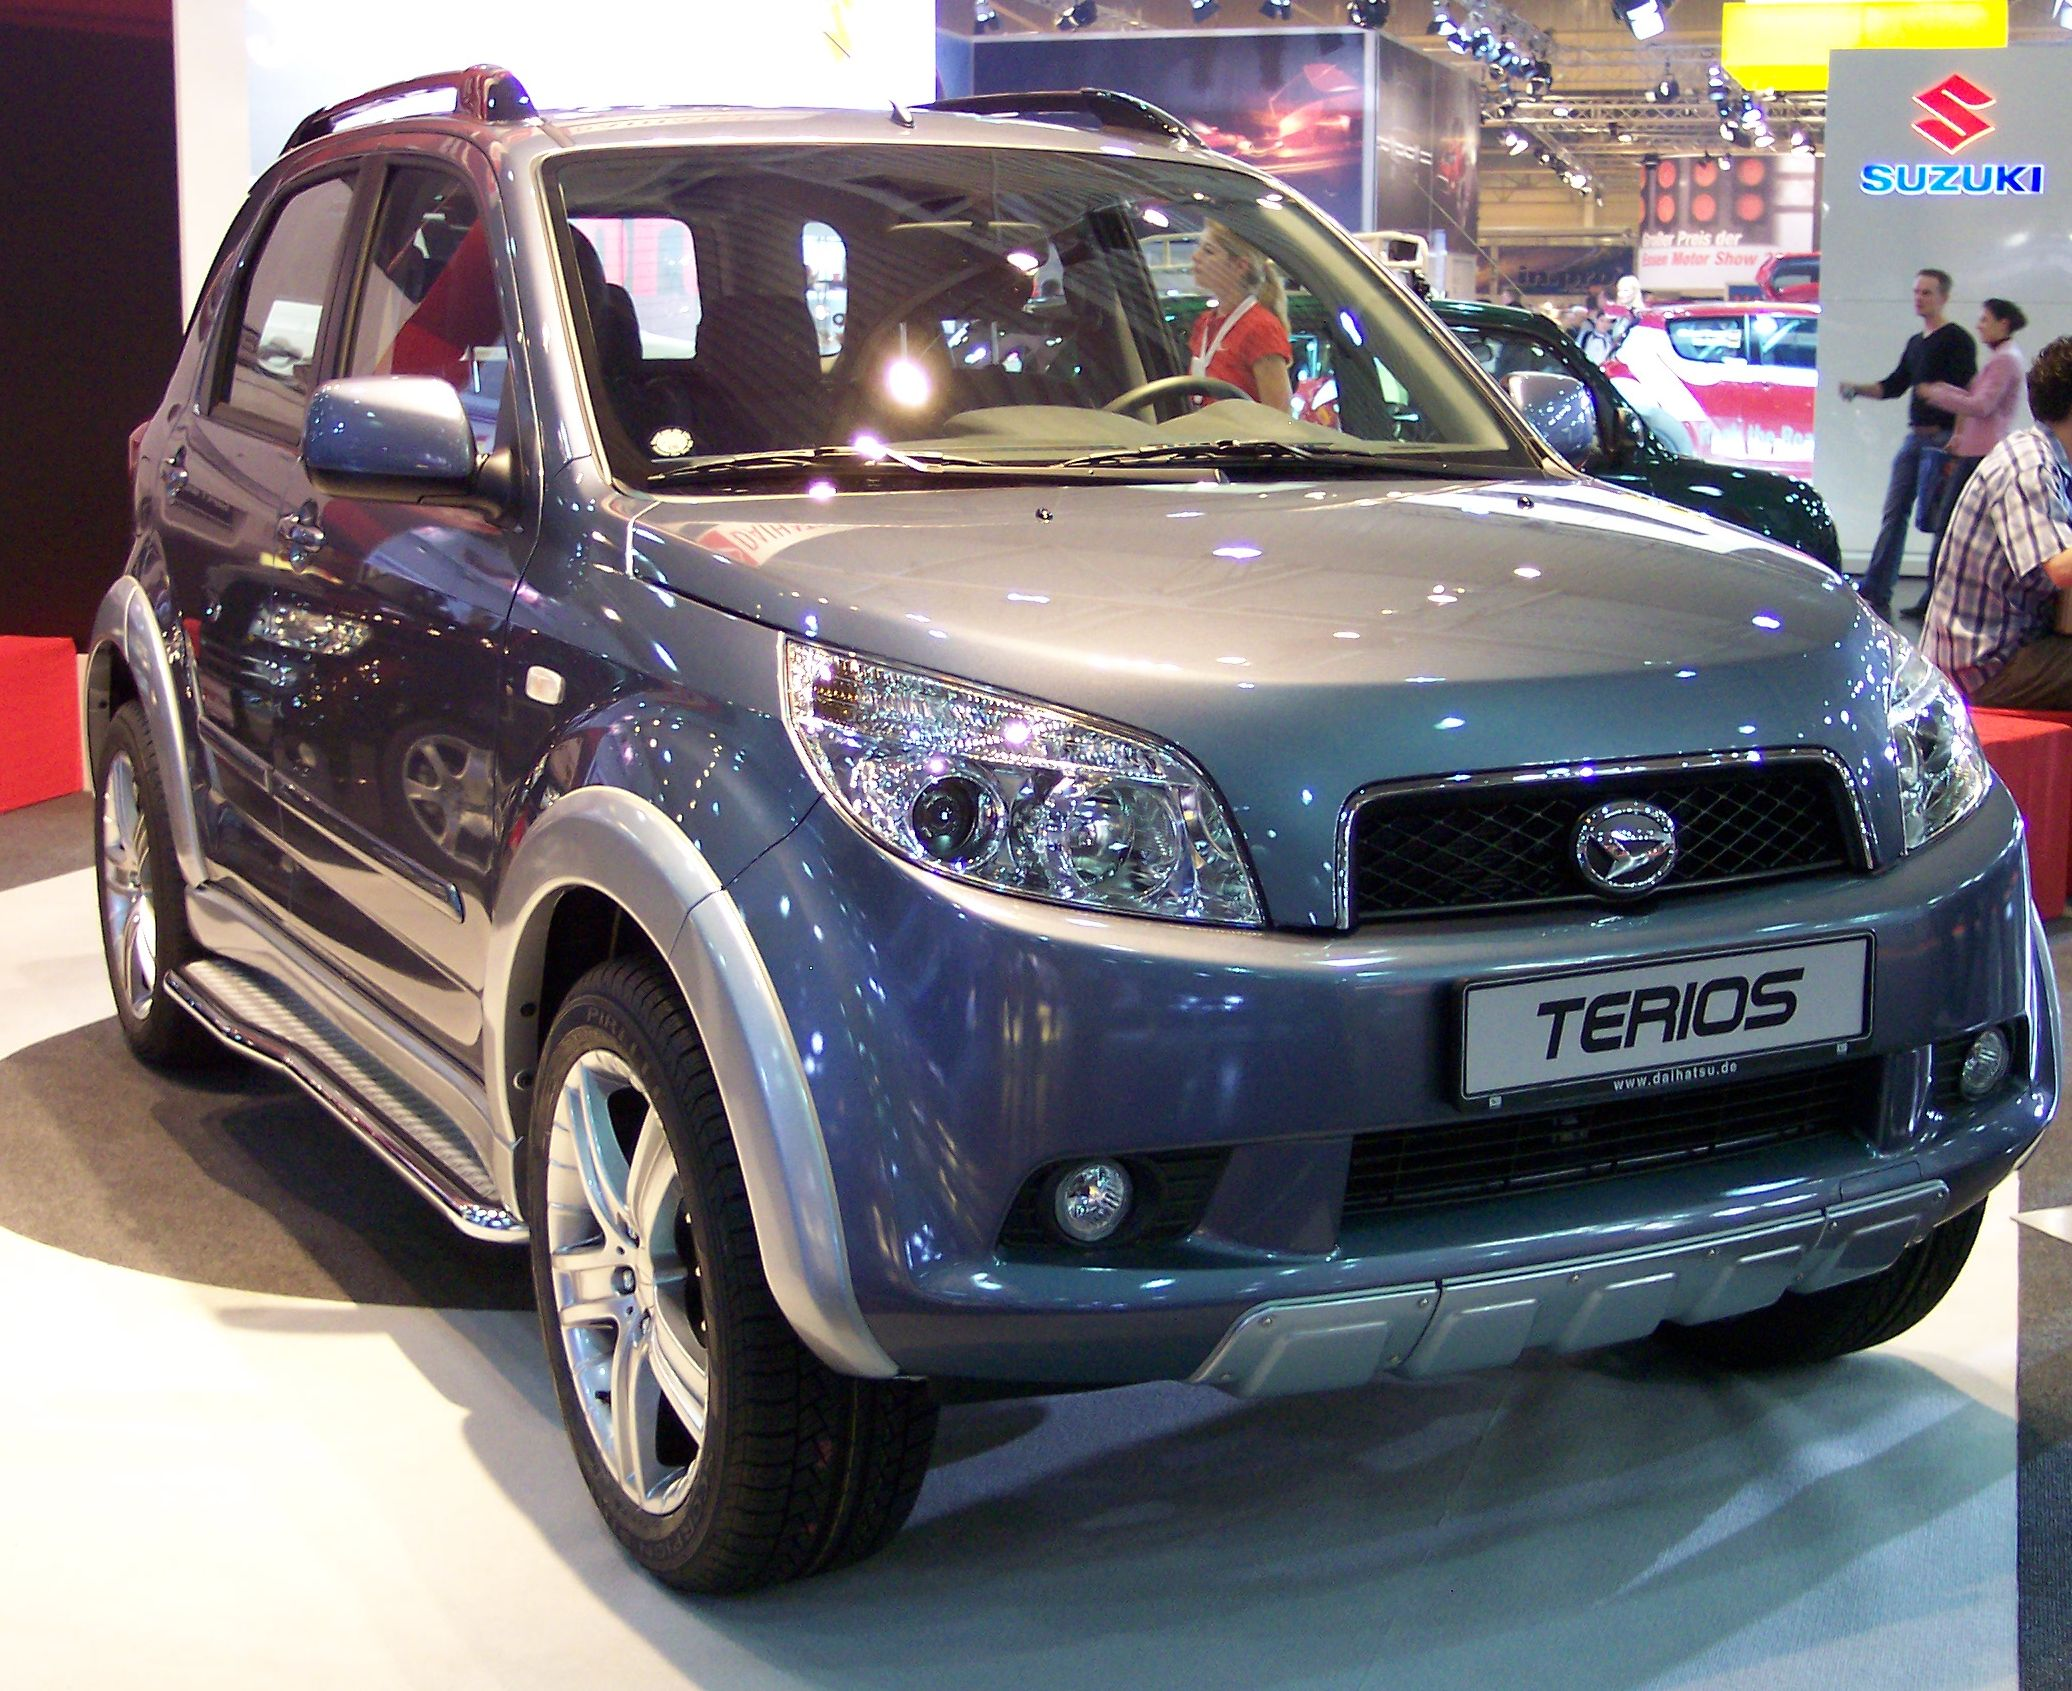 File:Daihatsu Terios 2006 vr steel EMS.jpg - Wikimedia Commons